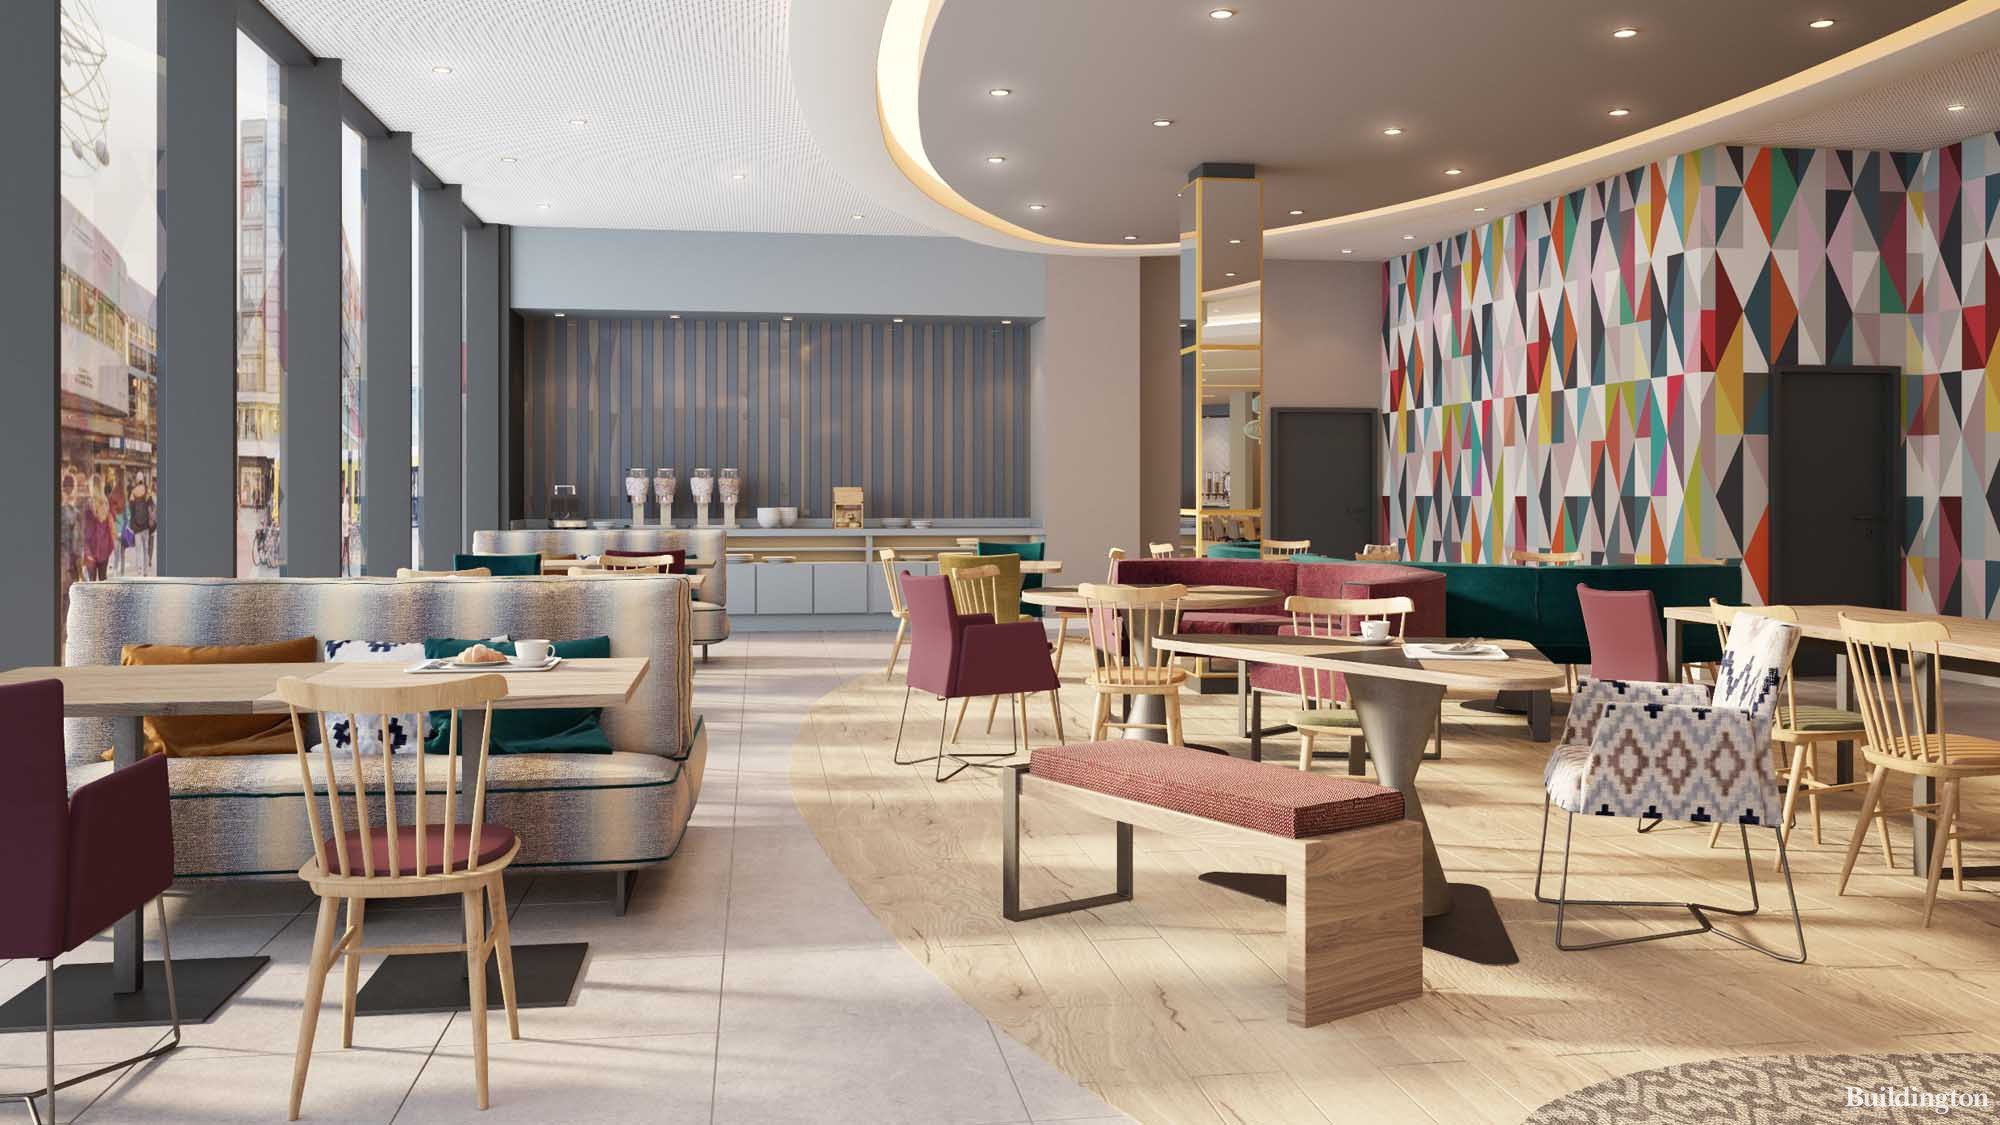 Hotel interior in the new 288-bedroom London hotel developed by Dominvs (CGI). The new Hampton by Hilton will open in July 2023.